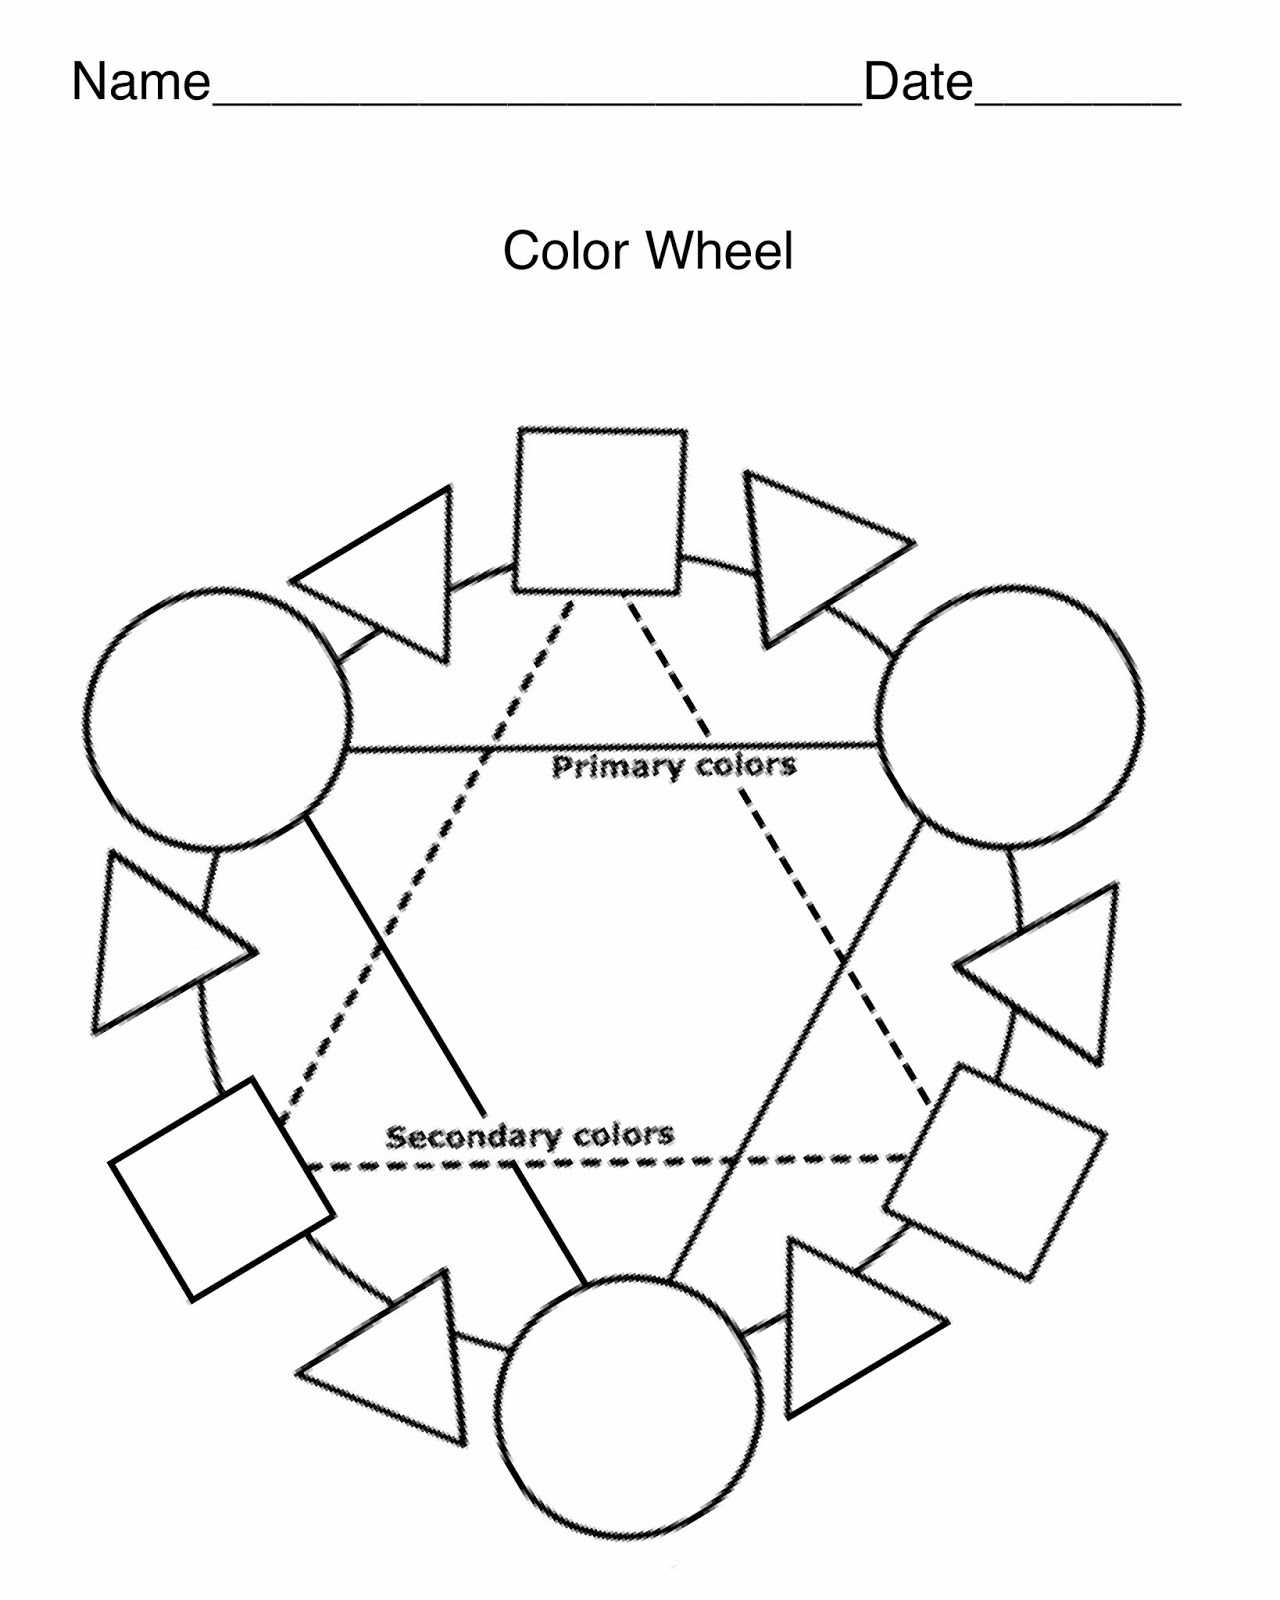 Color Wheel Blank Template Pictures To Pin